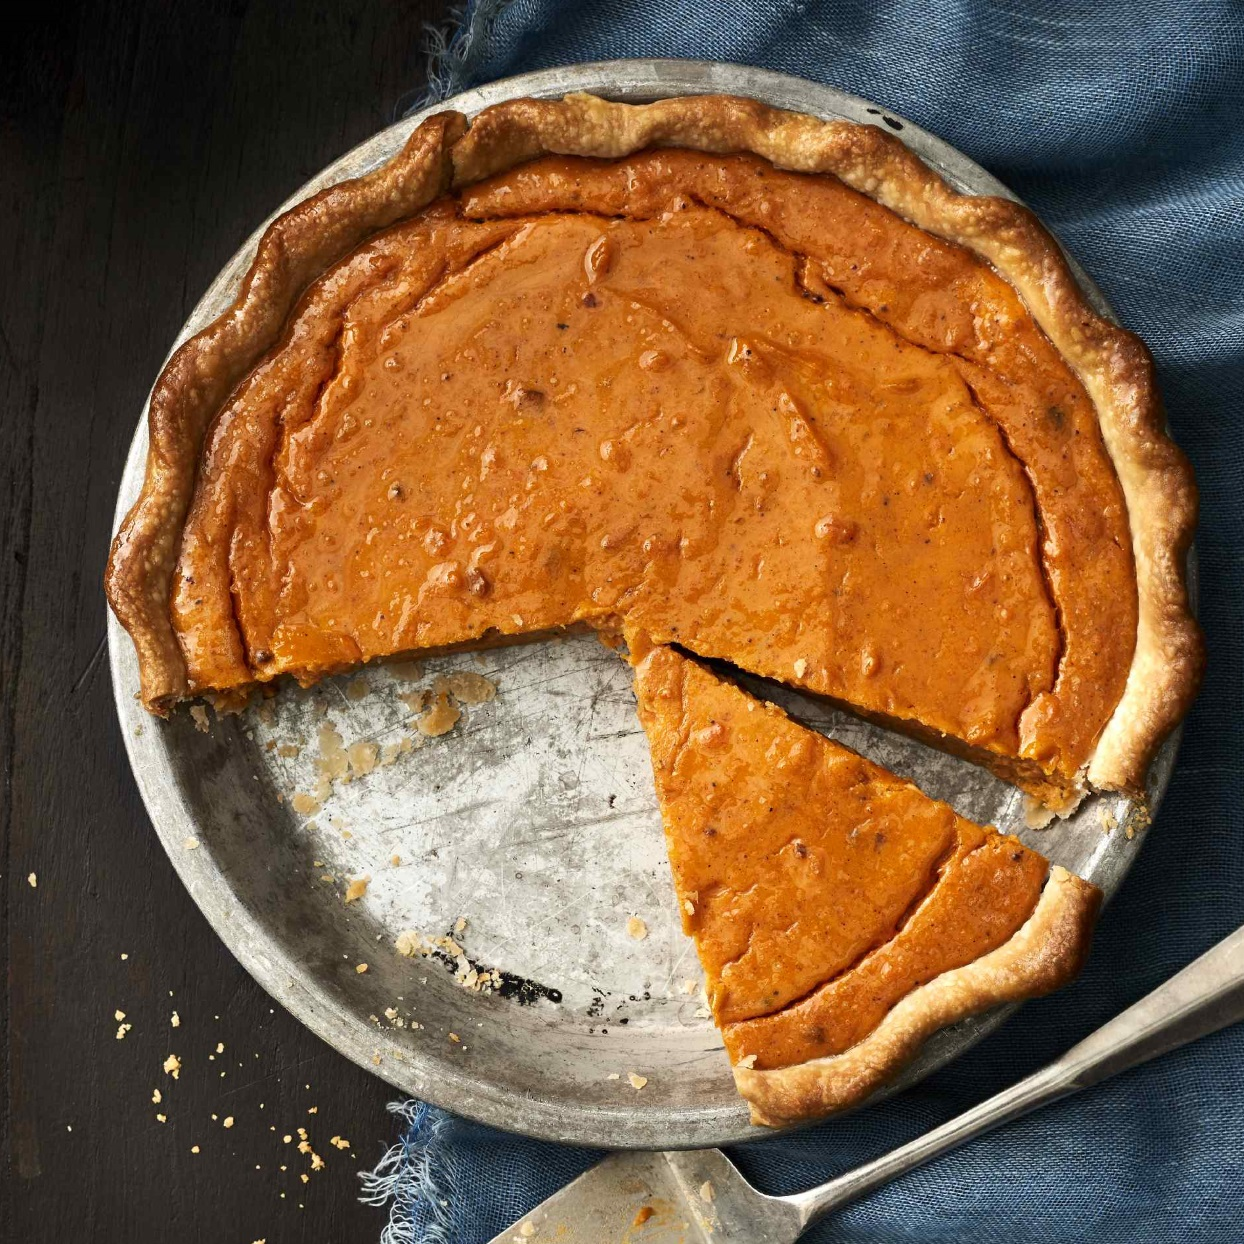 Rose's Sweet Potato Pie